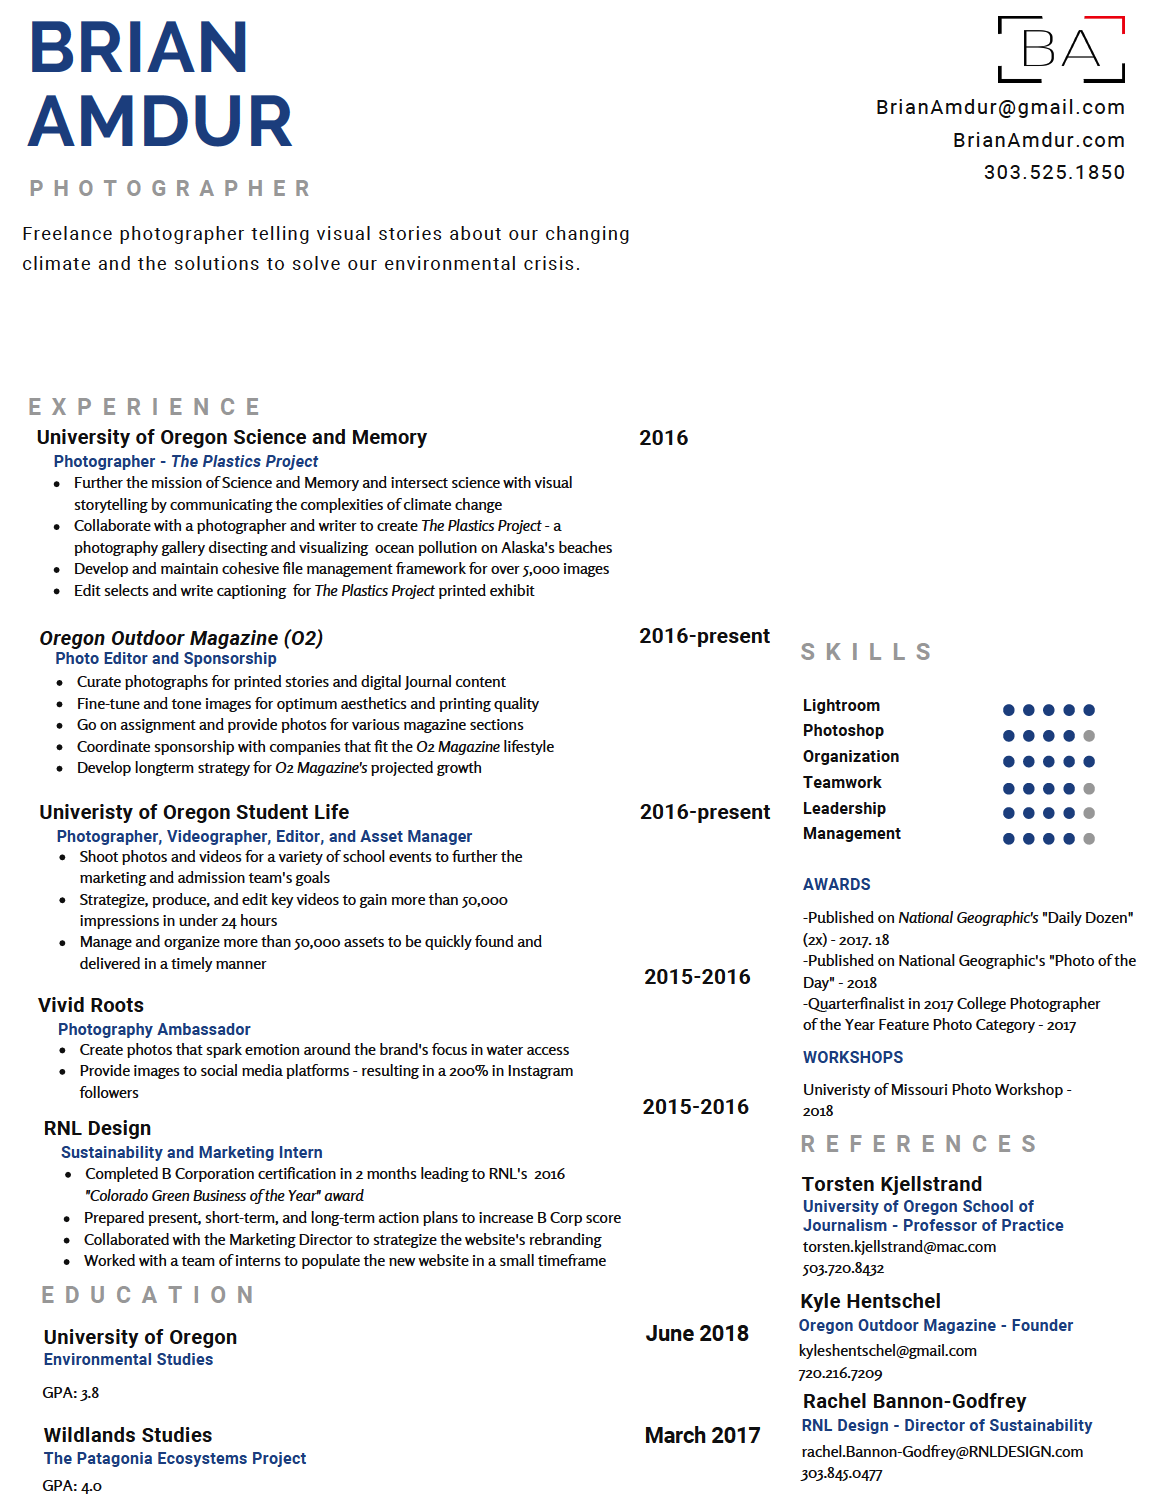 BrianAmdur_Resume_3035251850.png